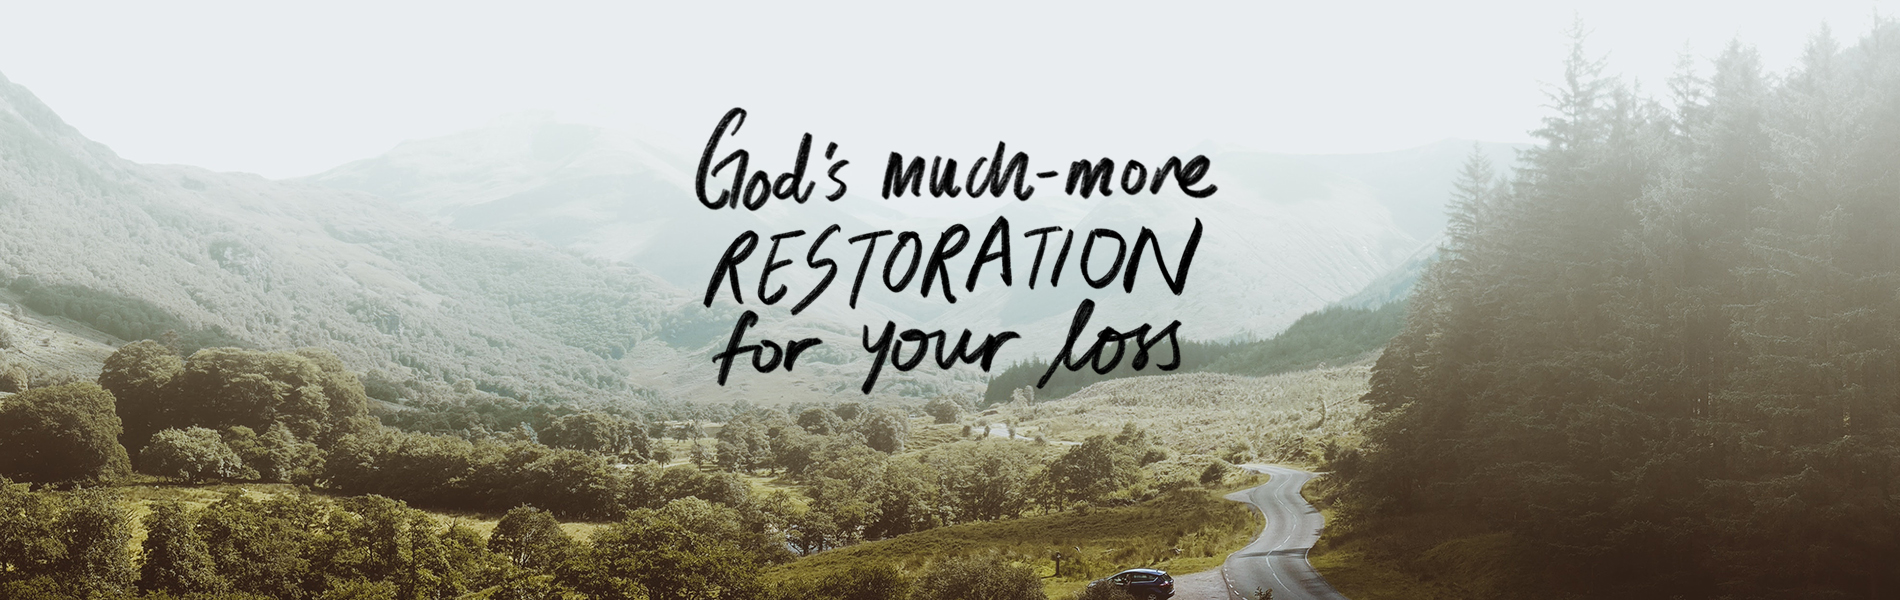 03-Mar_Gods-Much-More-Restoration-For-Your-Loss New Creation TV | Broadcasting the Gospel of Jesus